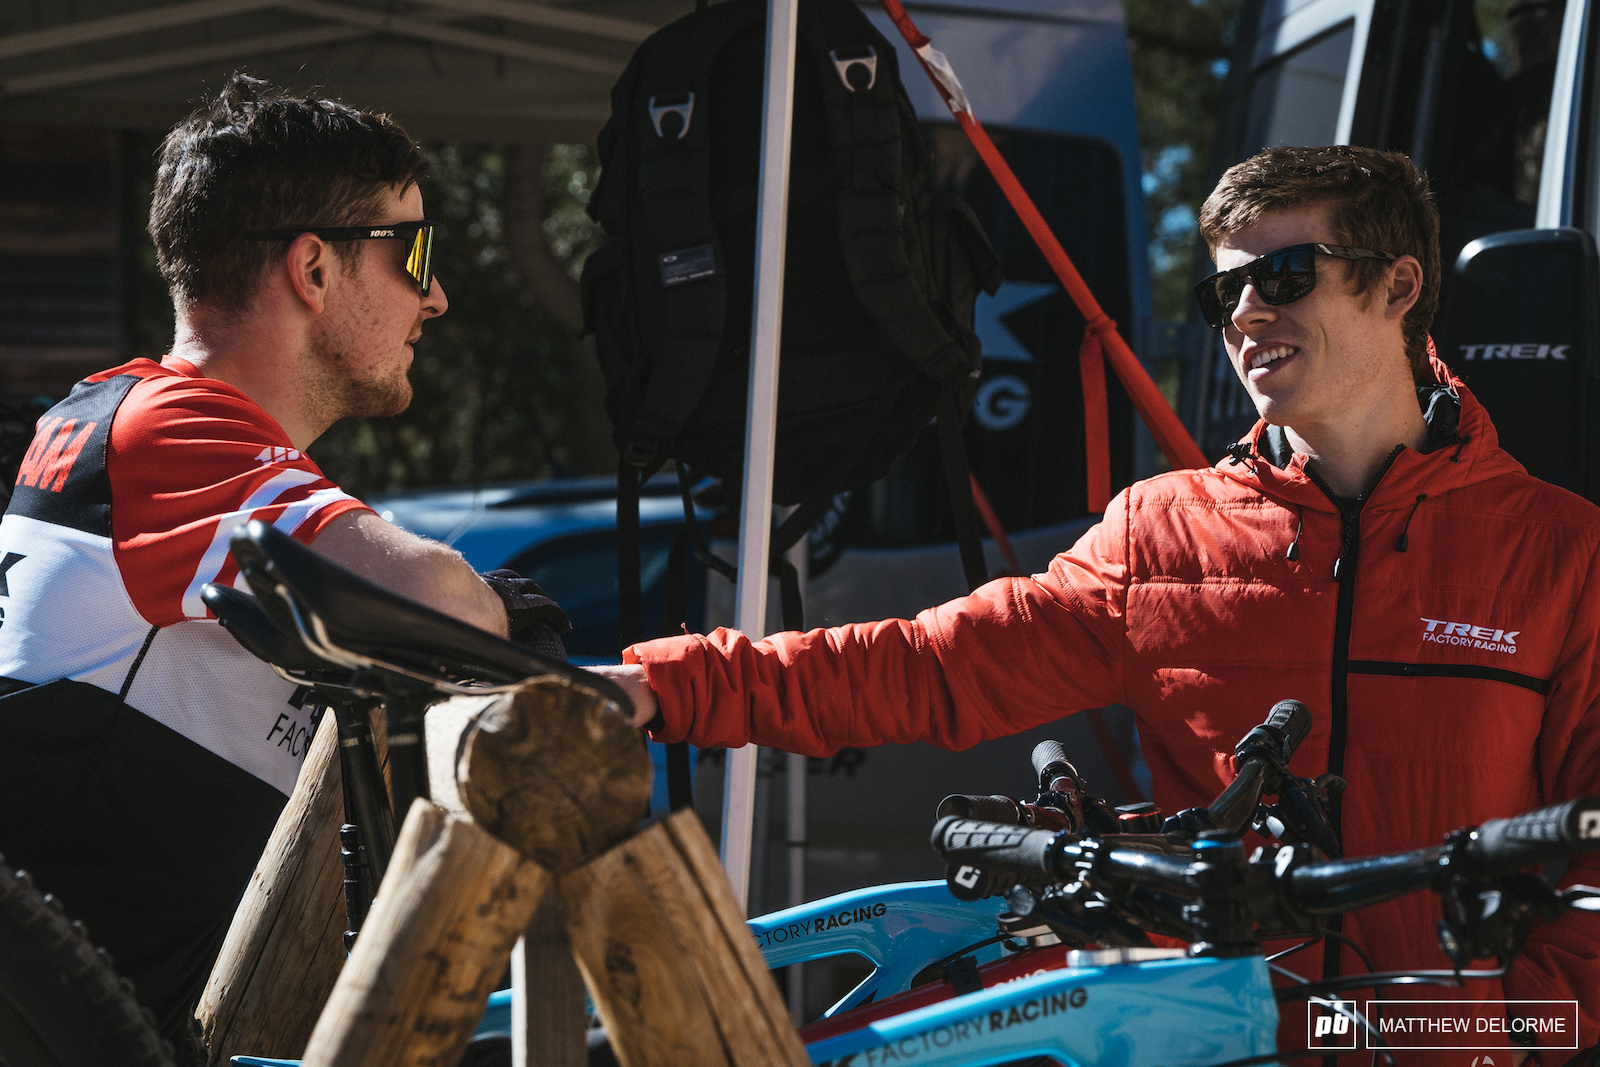 Coops and RC talk race rigs sunnies and the up coming season.